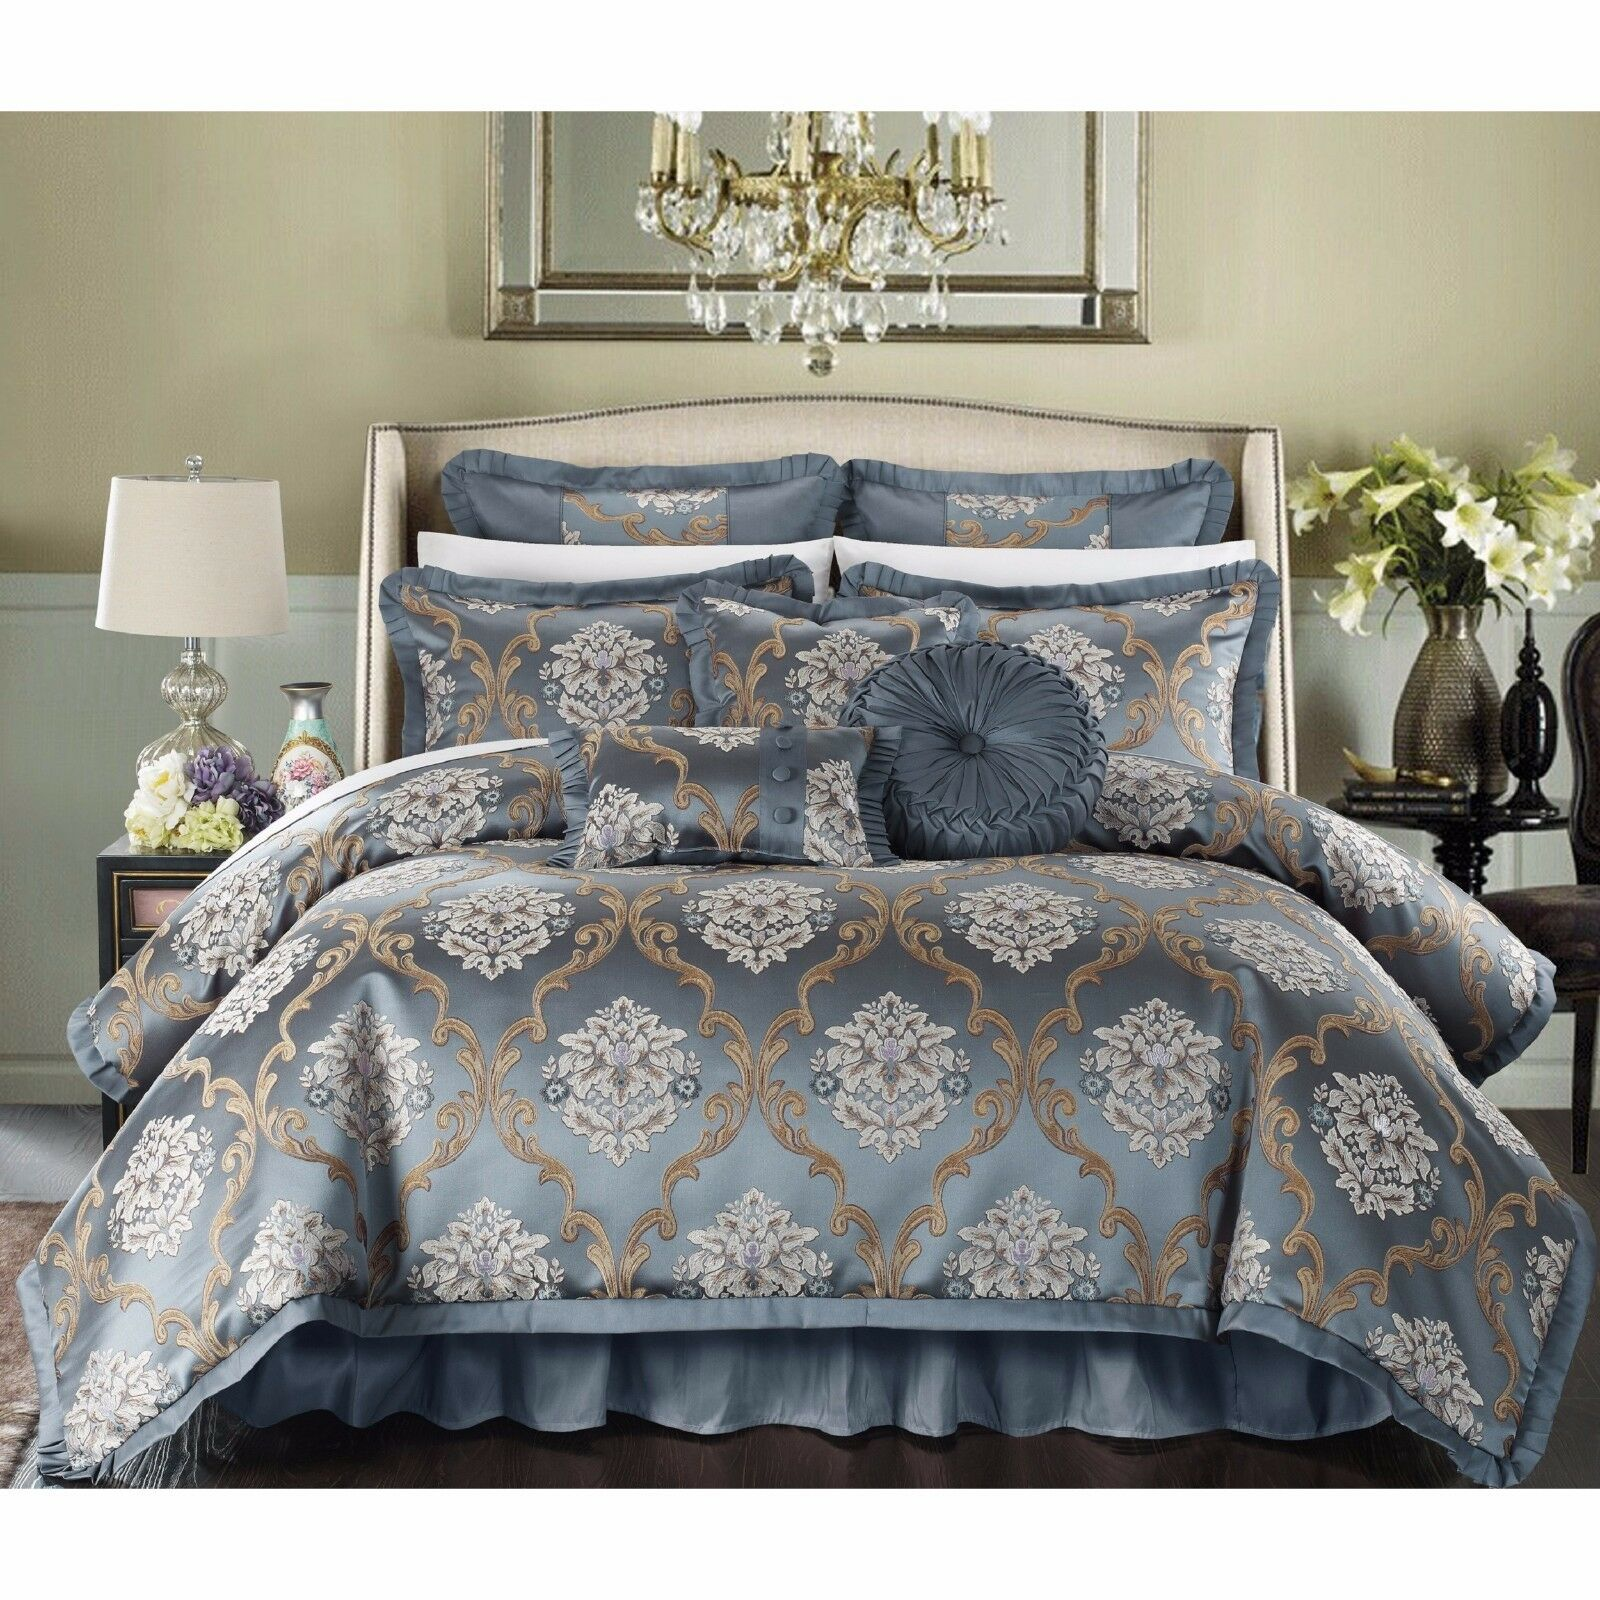 JACQUARD 9 PIECE COMFORTER SET   BED IN A BAG - King   Queen - 3 FarbeS